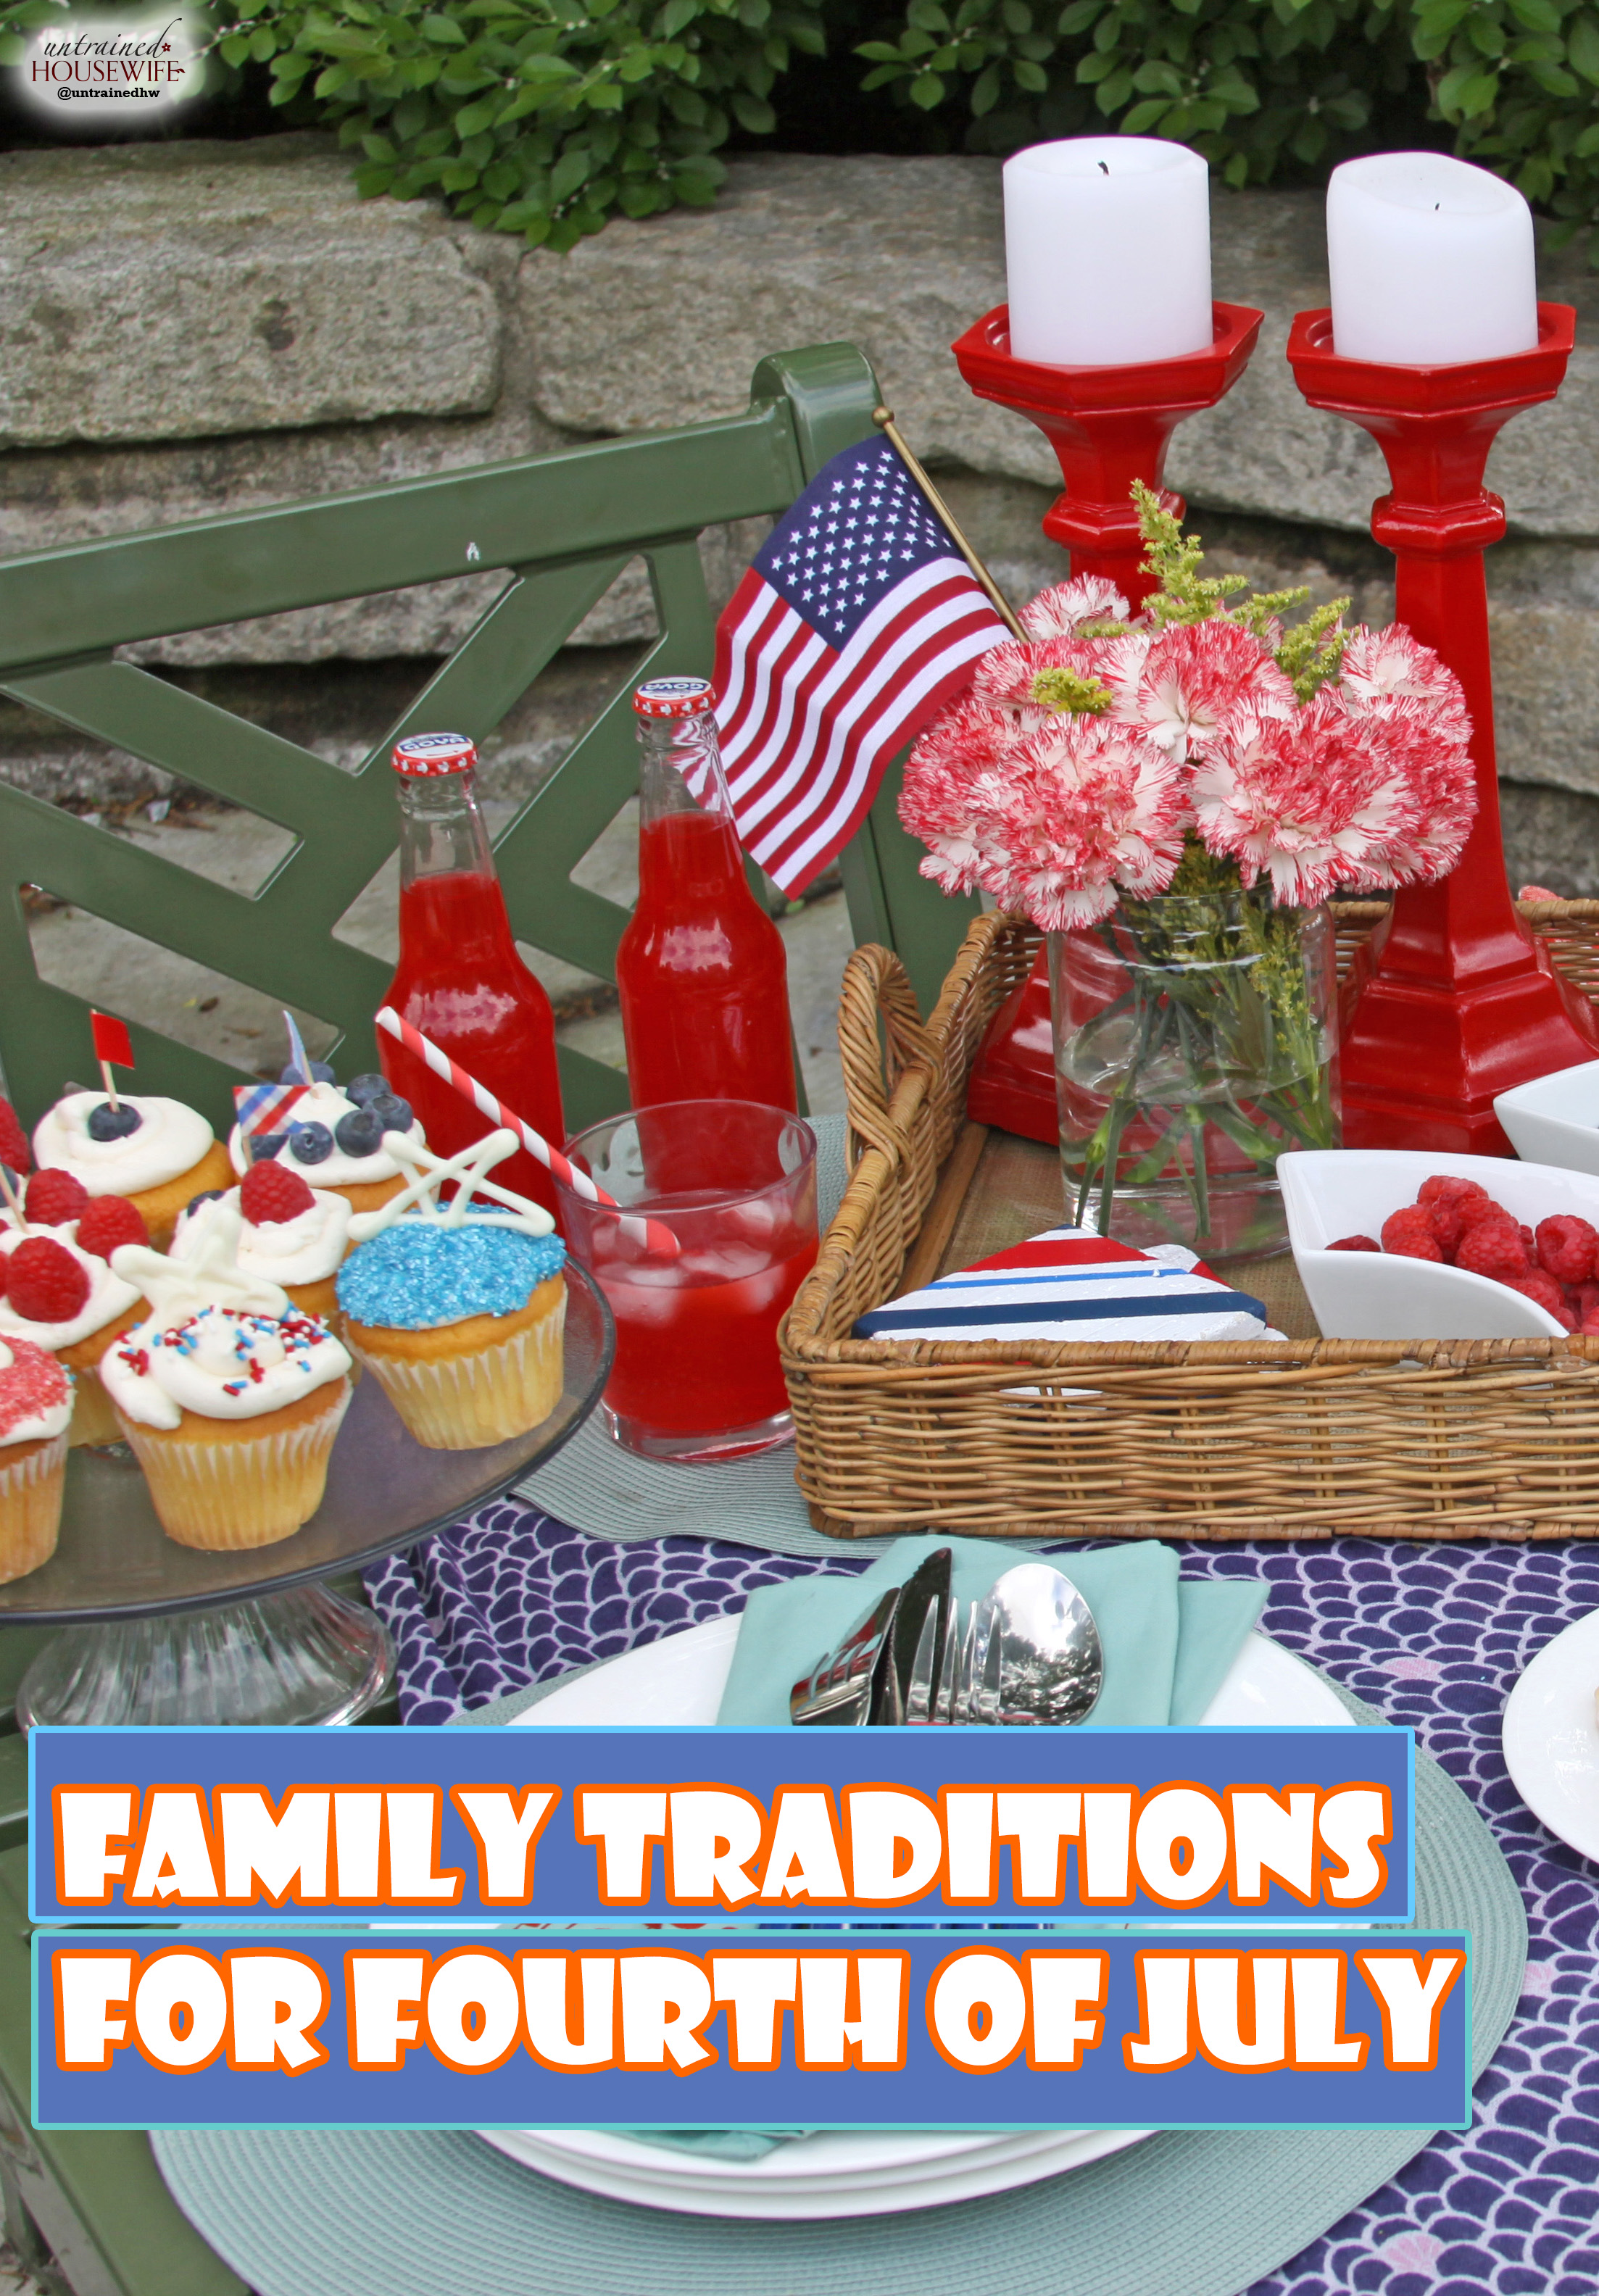 Family Traditions for Fourth of July